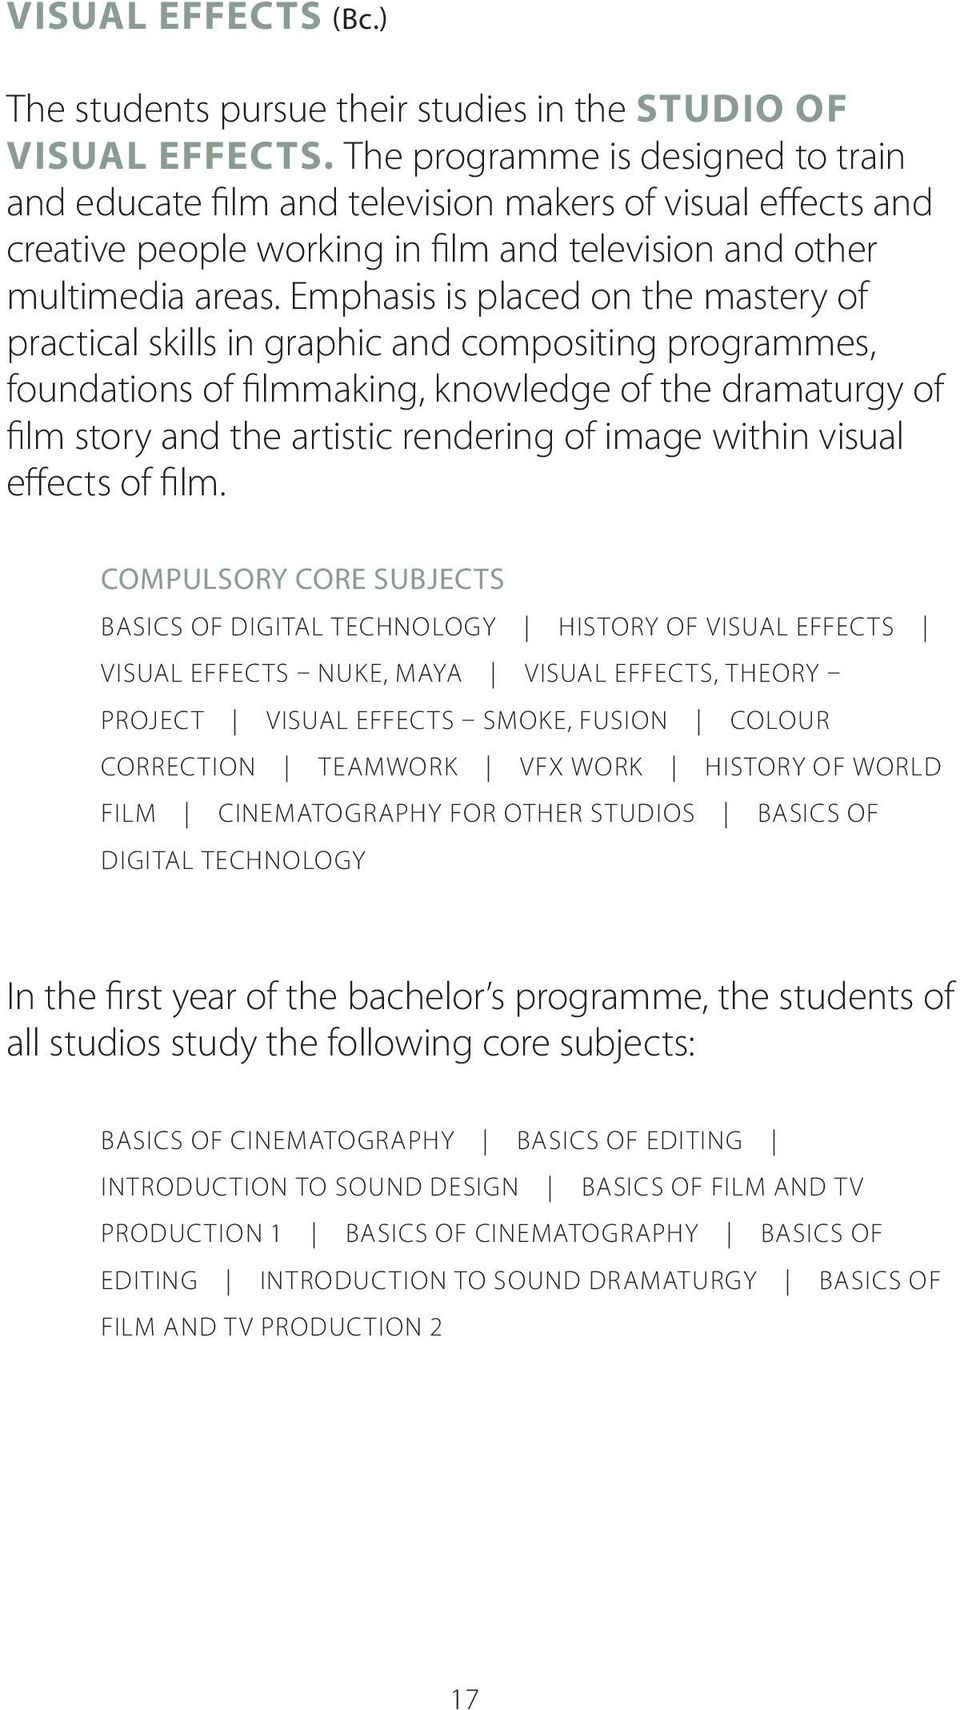 Emphasis is placed on the mastery of practical skills in graphic and compositing programmes, foundations of filmmaking, knowledge of the dramaturgy of film story and the artistic rendering of image